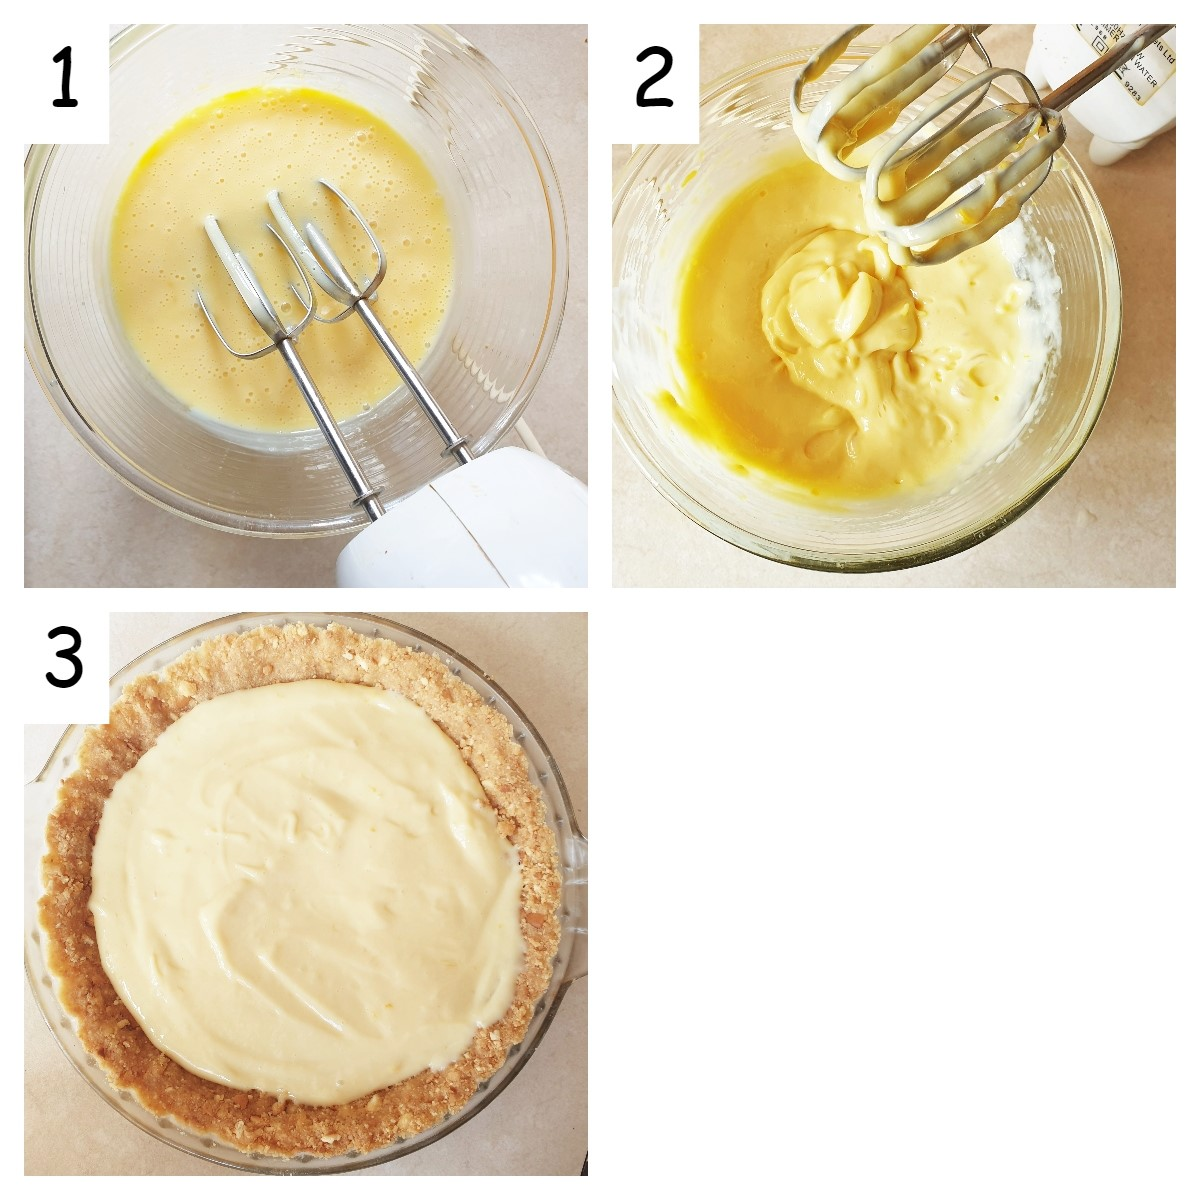 Collage of 3 images showing steps for making the lemon filling, and pouring it into the crust.